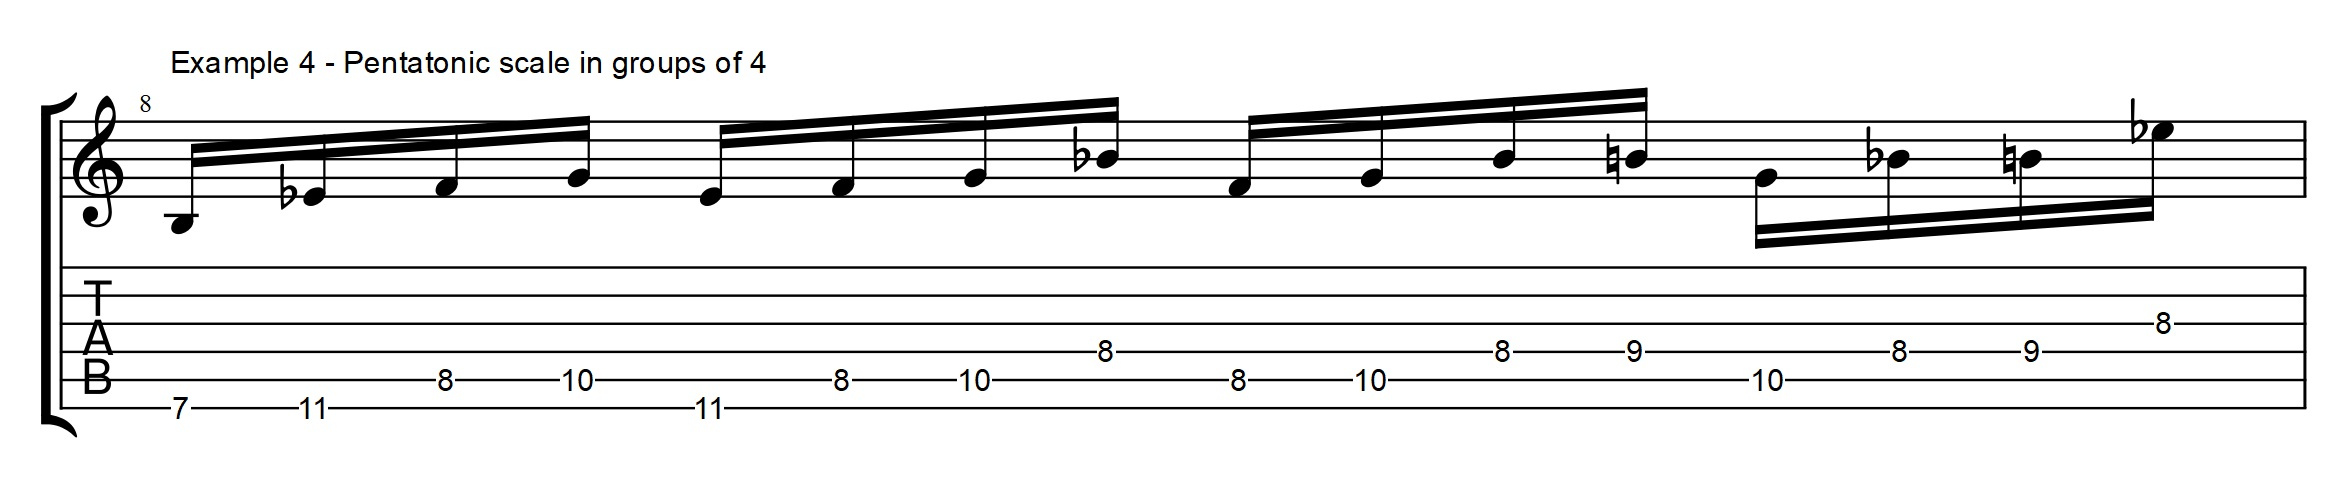 Pentatonic scale for altered chords modern melodic minor secrets finding the chords in the scale hexwebz Choice Image